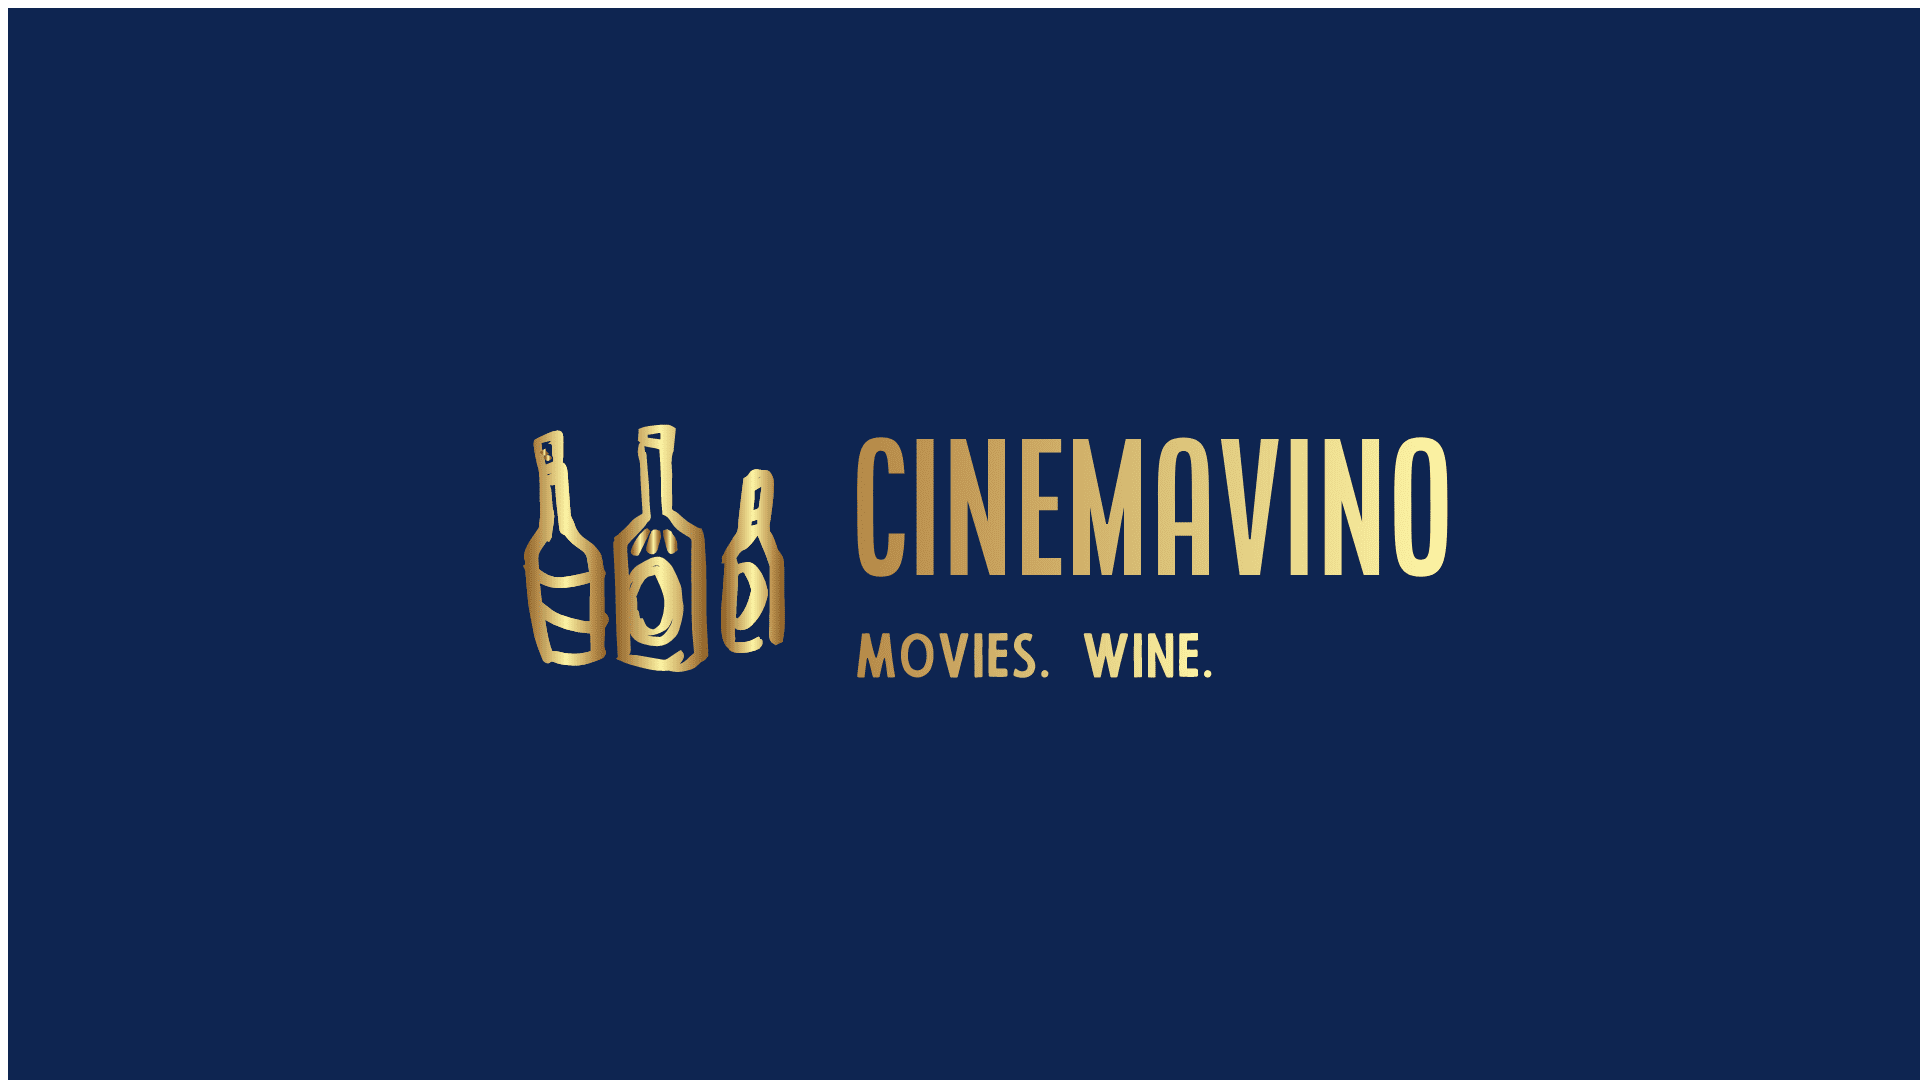 Cinemavino